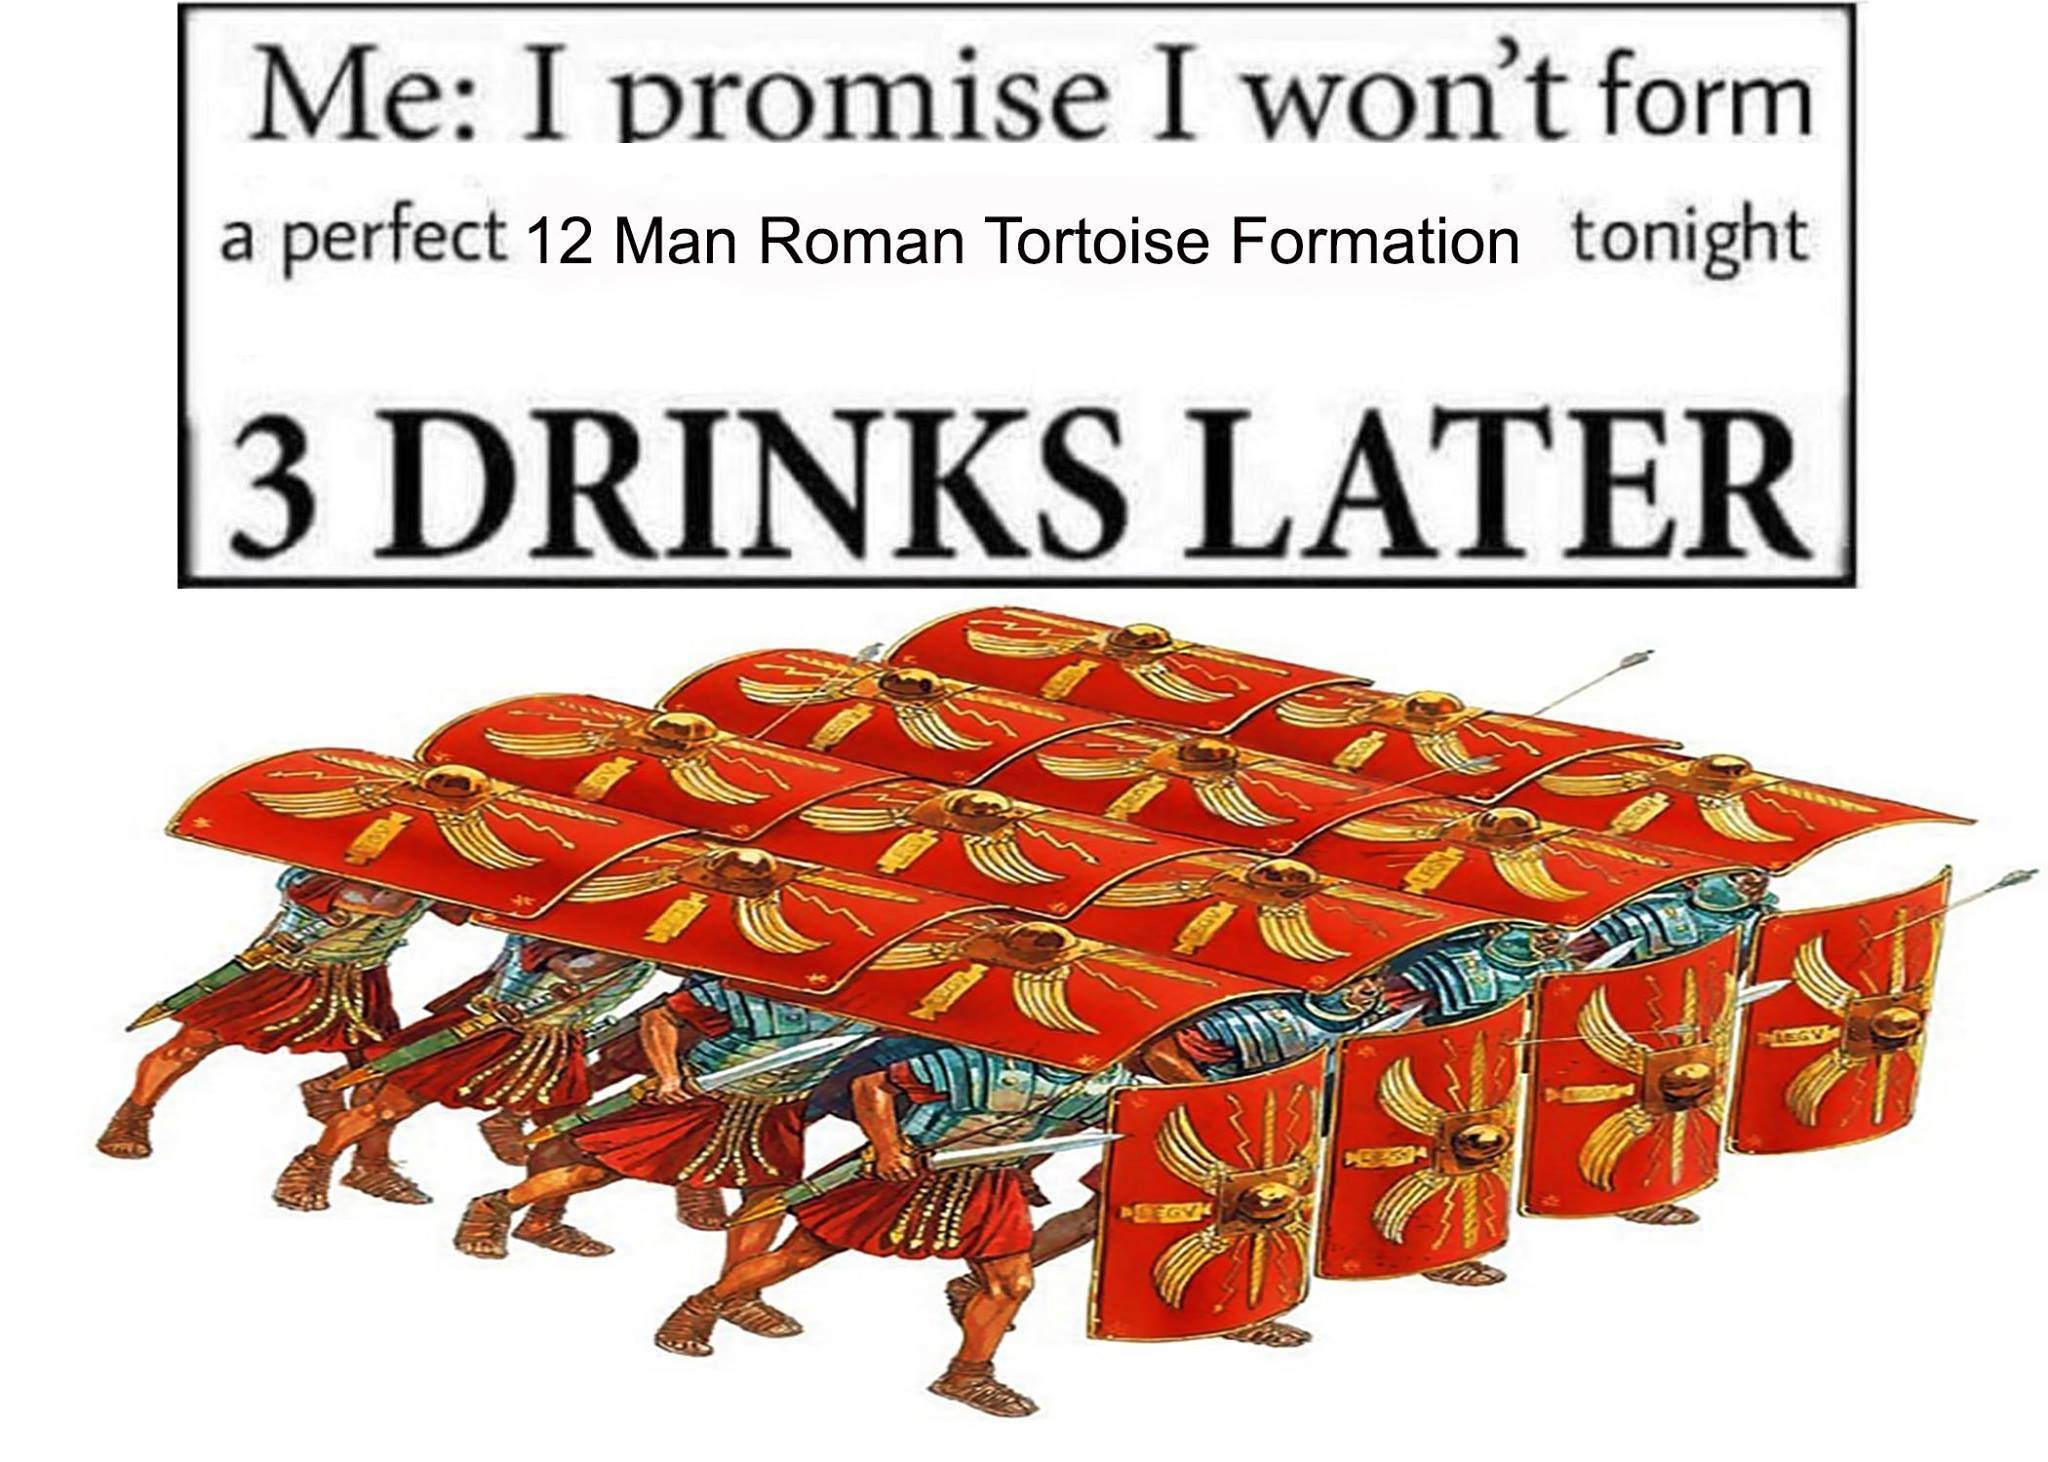 me i promise i wont form a perfect 12 man roman tortoise formation